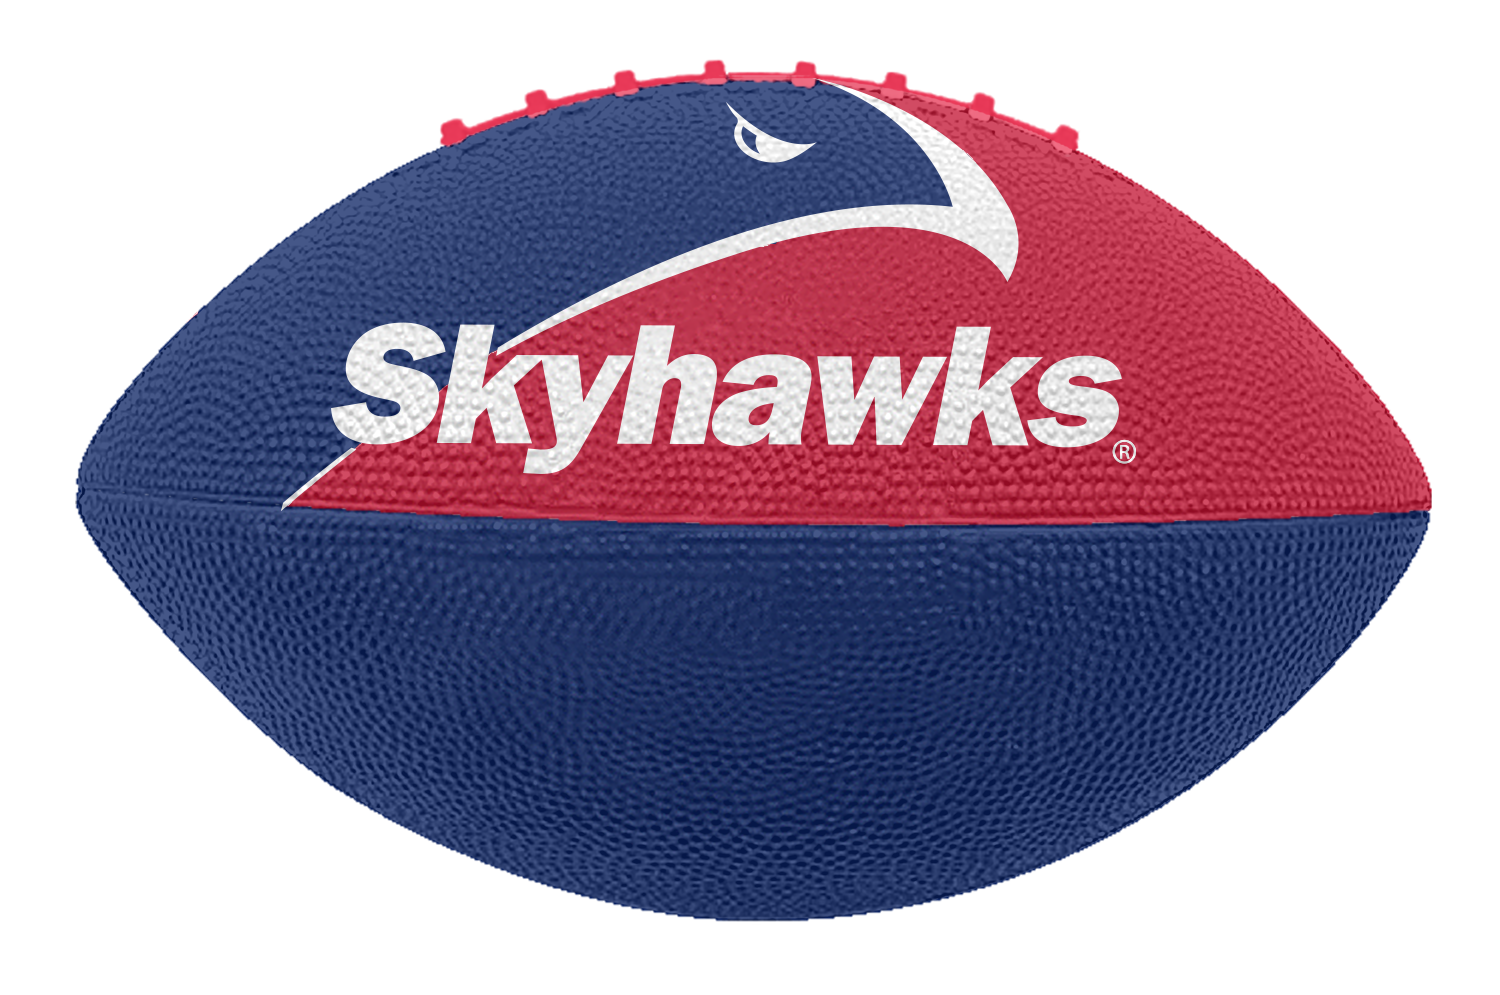 2019 Skyhawks Football size 5